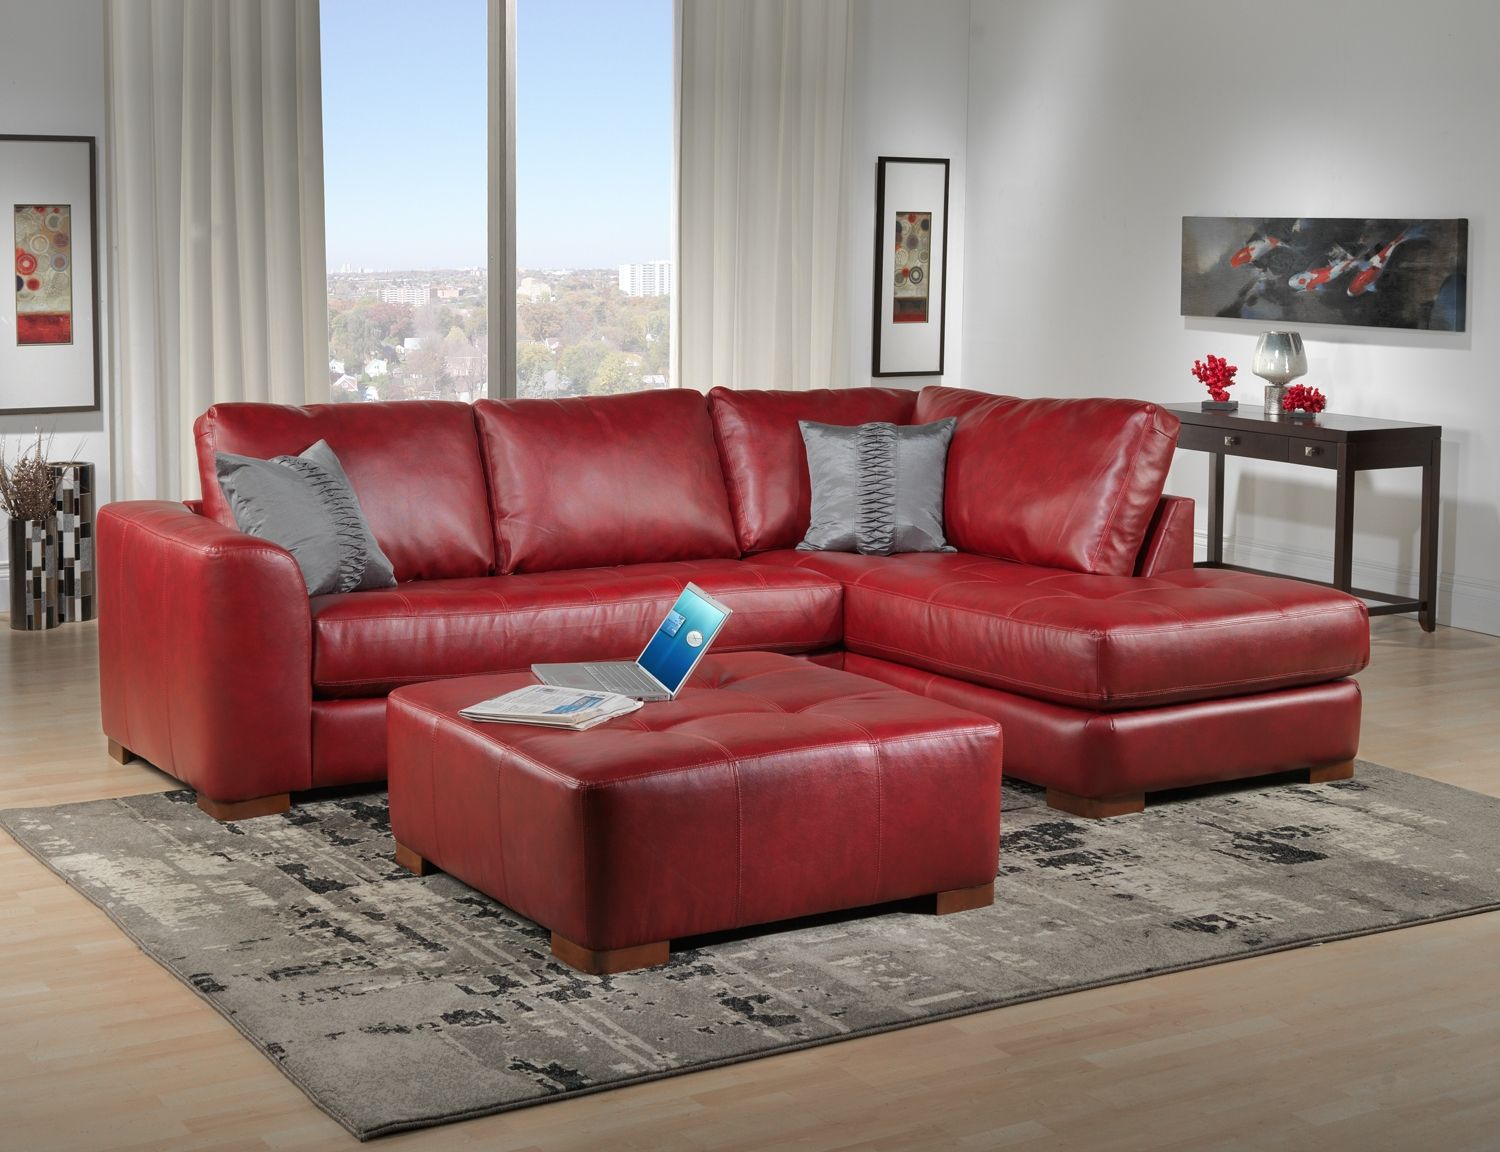 i want a red leather couch humble abode pinterest red leather